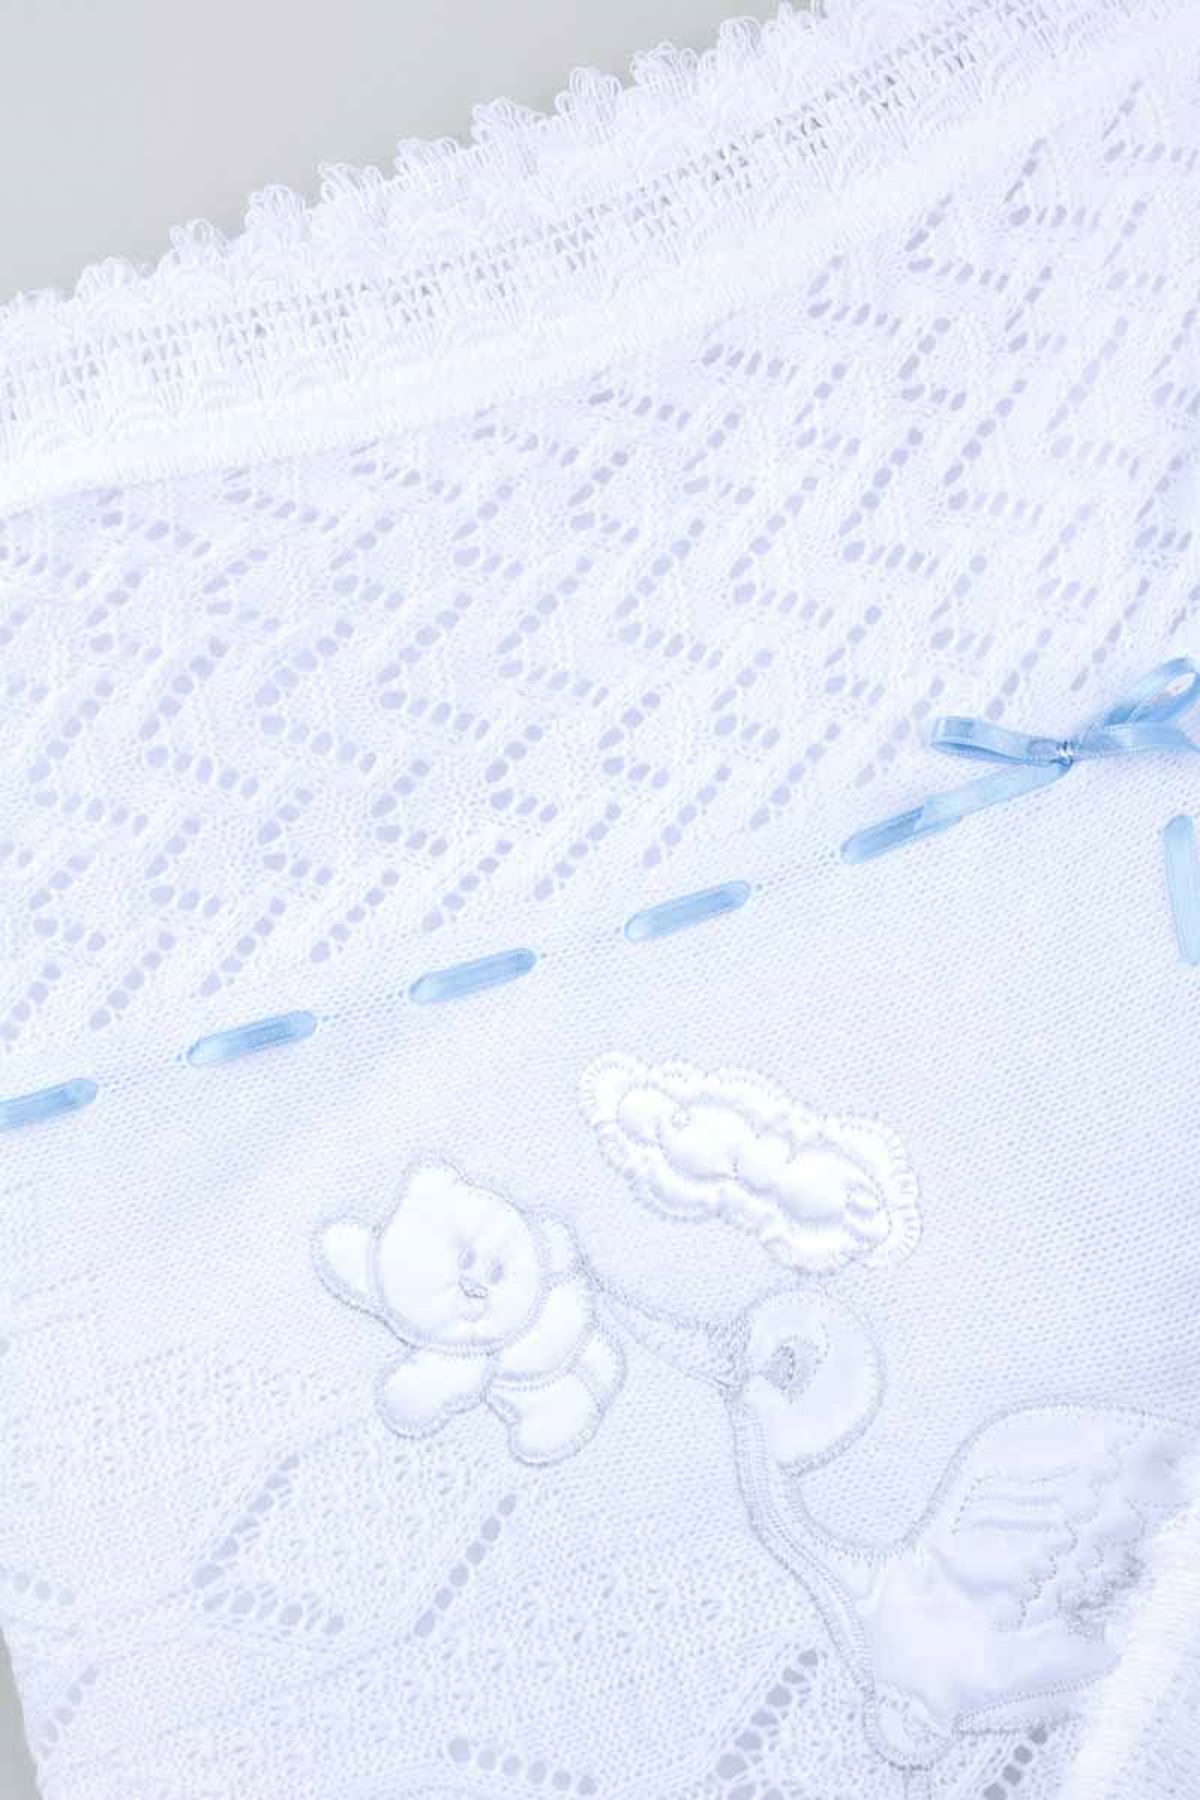 White blue hand knitted knitwear baby blankets for girls boys babies cotton seasonal warm 80*80 cm special blankets model